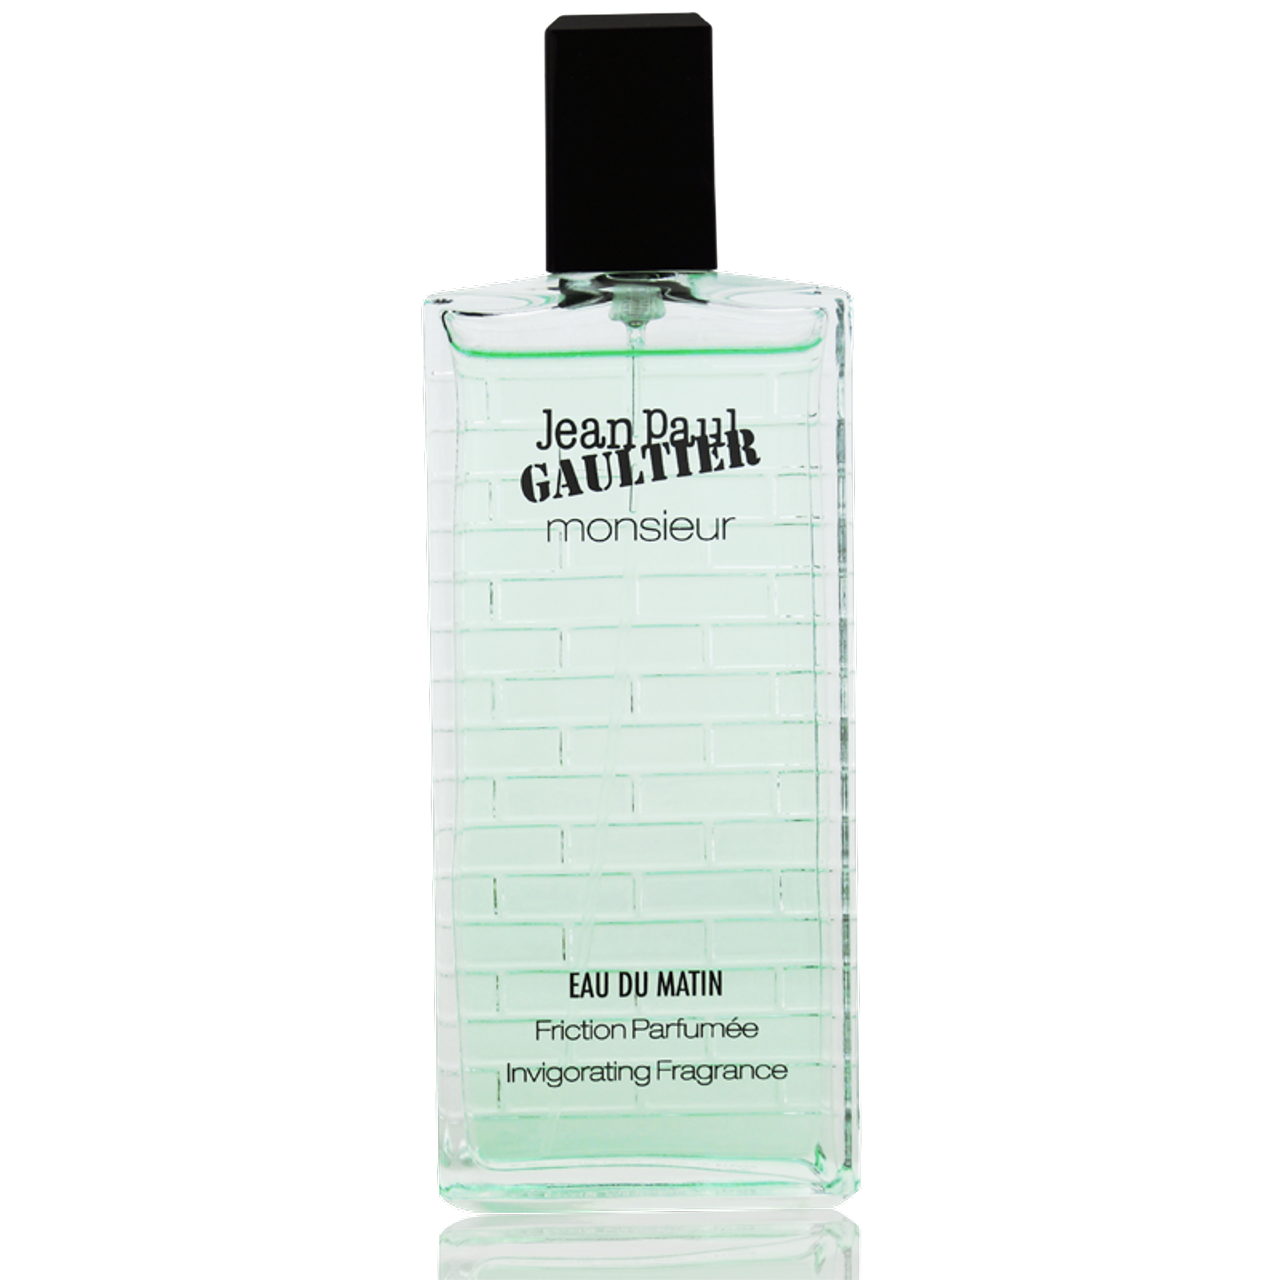 Jean Paul Gaultier Monsieur Eau Du Matin EdC 100ml